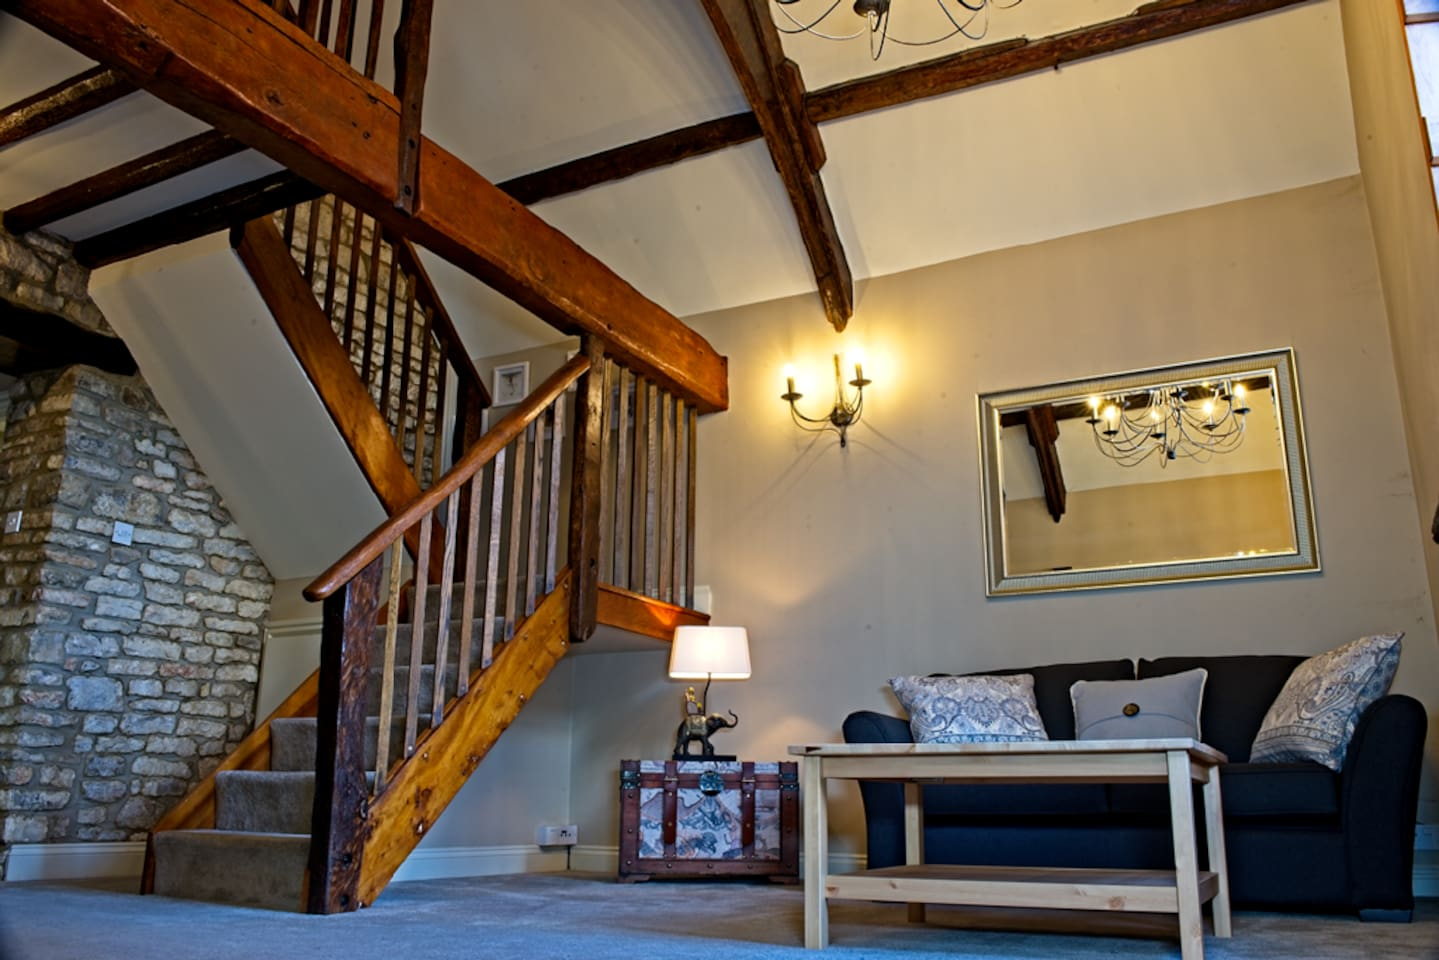 Sitting room with vaulted ceiling and original oak beams